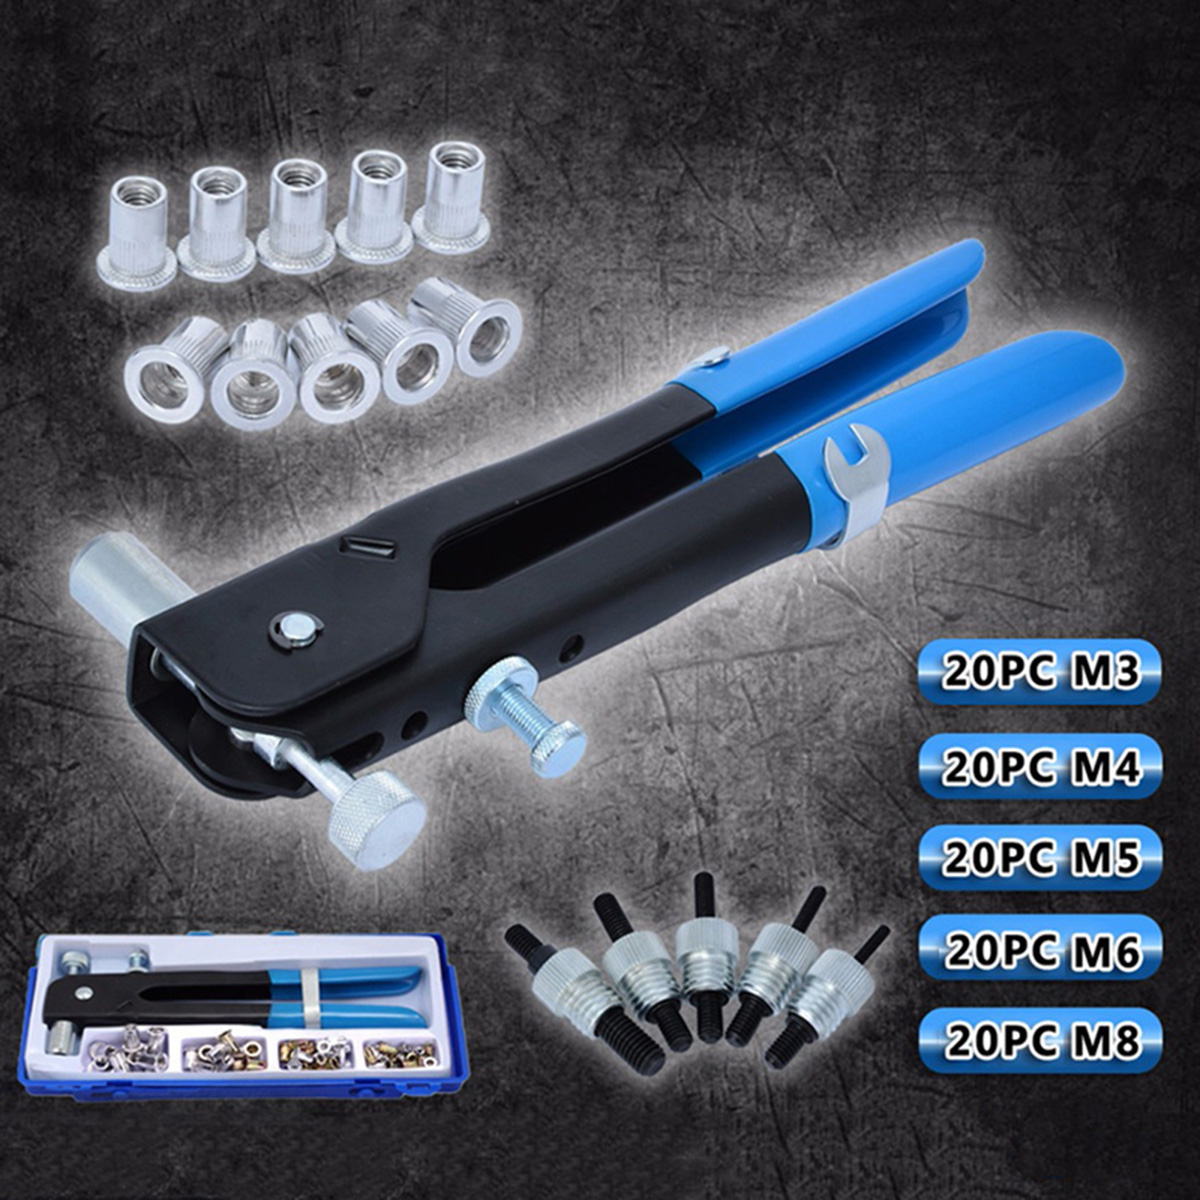 Cheap product m4 tool in Shopping World